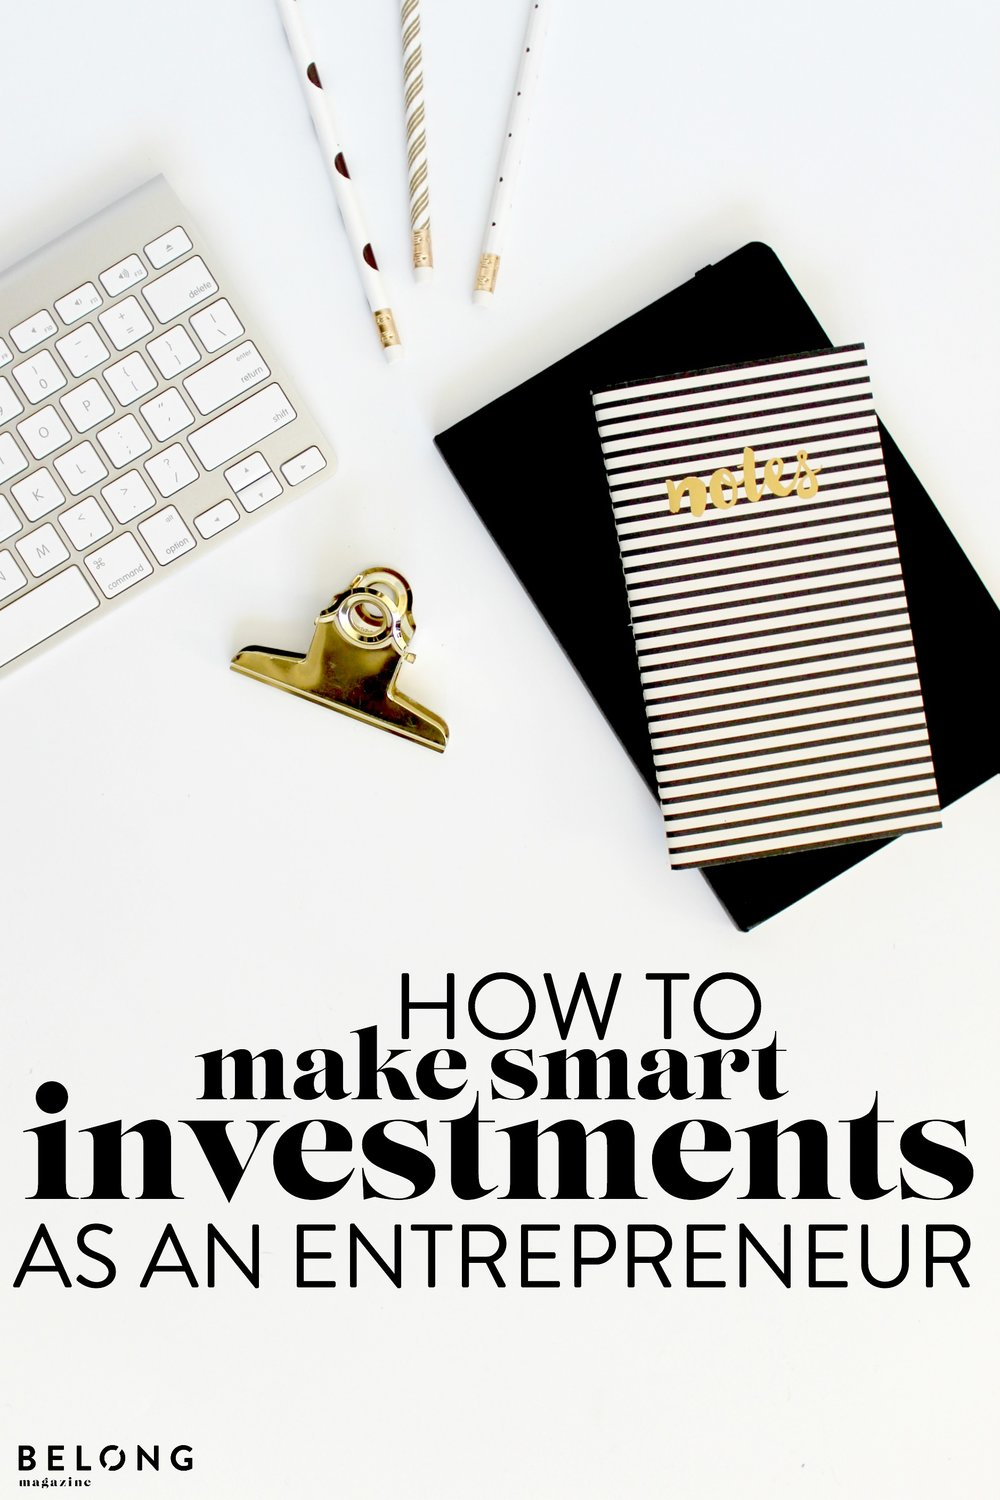 how to make smart investments for your business - profitability, planning, money, revenue, sales - by Holly Meyer on the belong magazine blog - female entrepreneurs, lady boss, women in business, solopreneur, creativepreneur